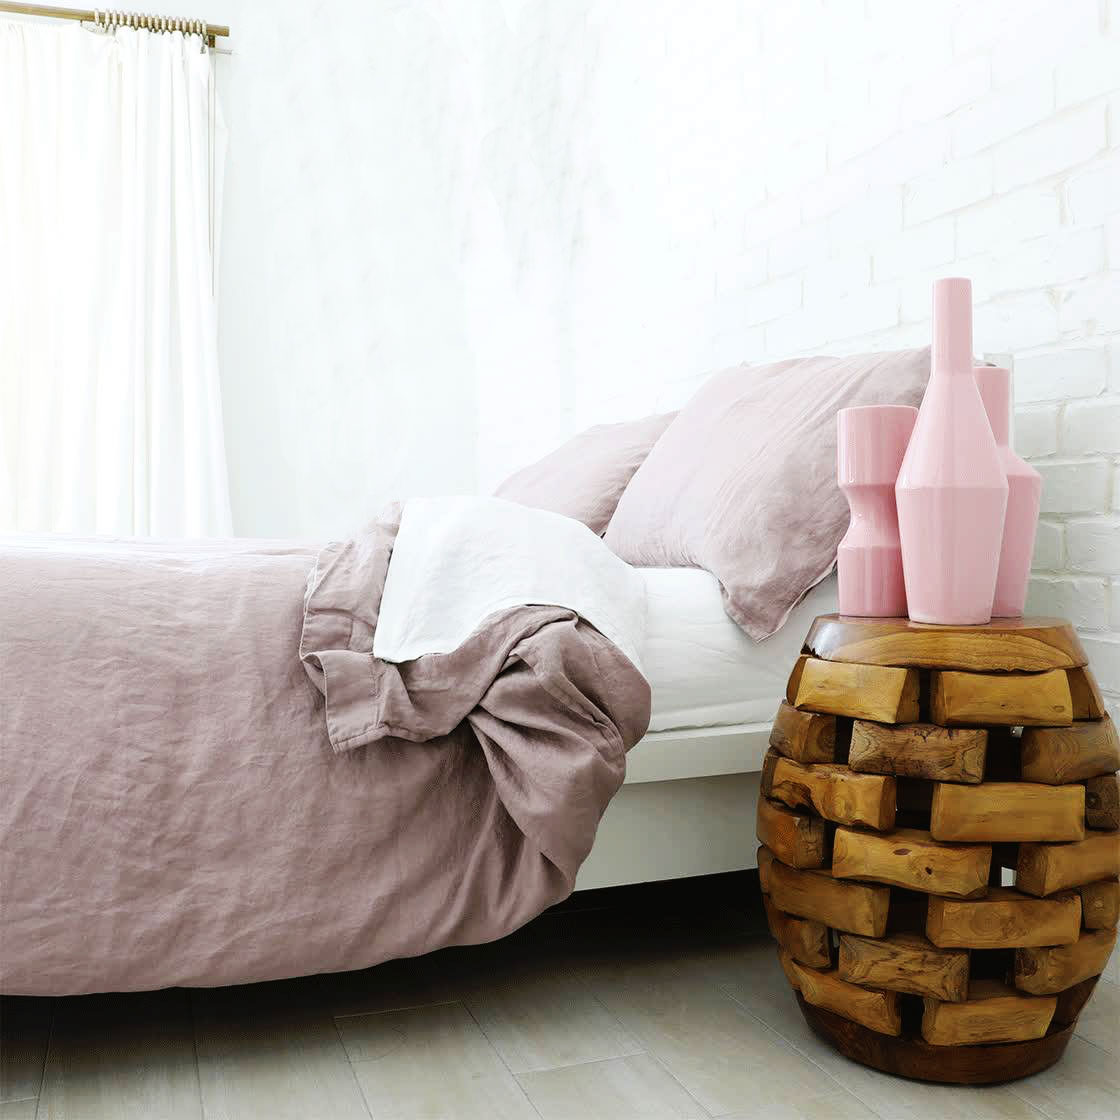 GREAT FEEL, AWESOME RELAXED LOOK, STAY COOL AND COMFORTABLE WITH  100% FRENCH LINEN  DUVET AND SHEETS FROM PRIMARY GOODS – AFFORDABLE LUXURY